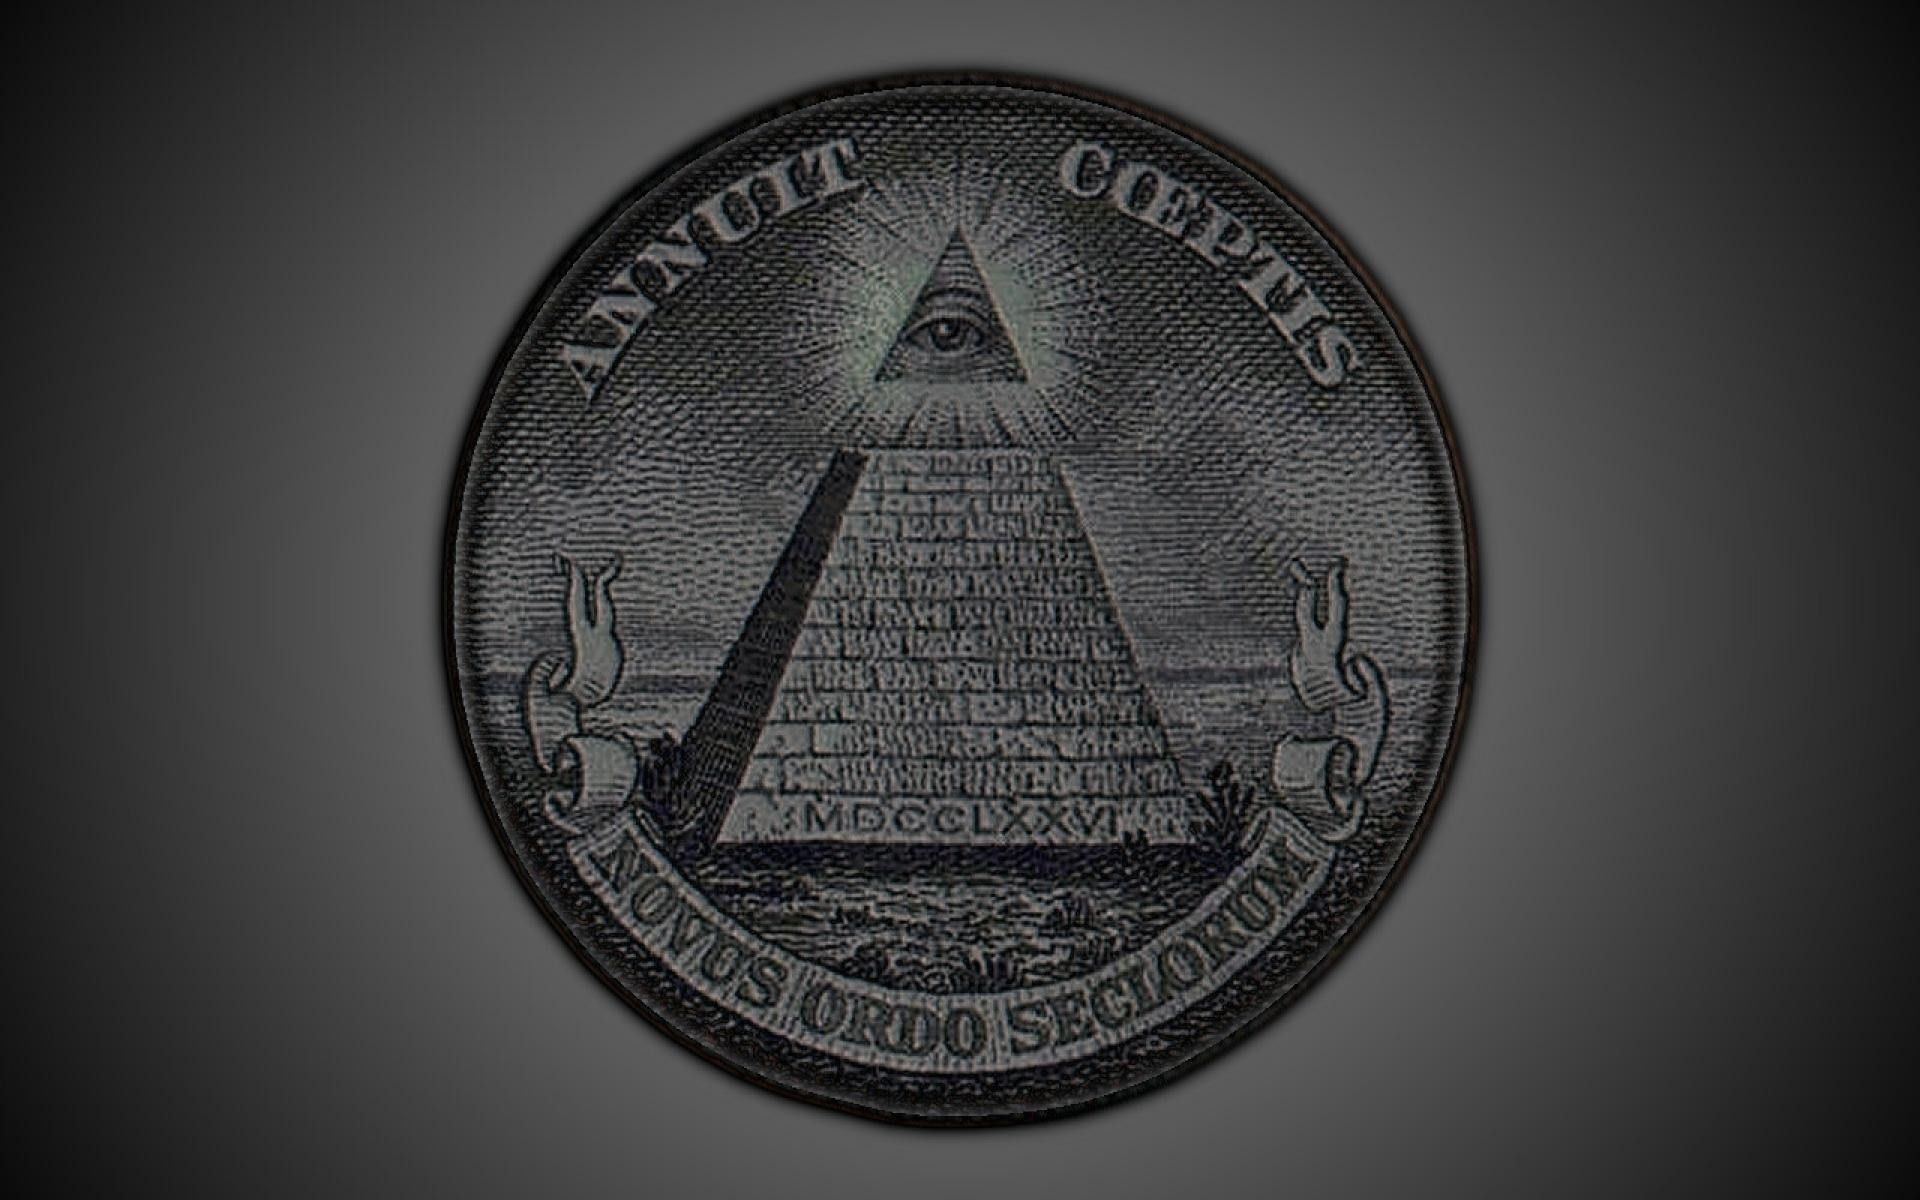 1920x1200 Trippy Illuminati Wallpaper | HD Wallpapers | Pinterest | Illuminati, Hd  wallpaper and Wallpaper